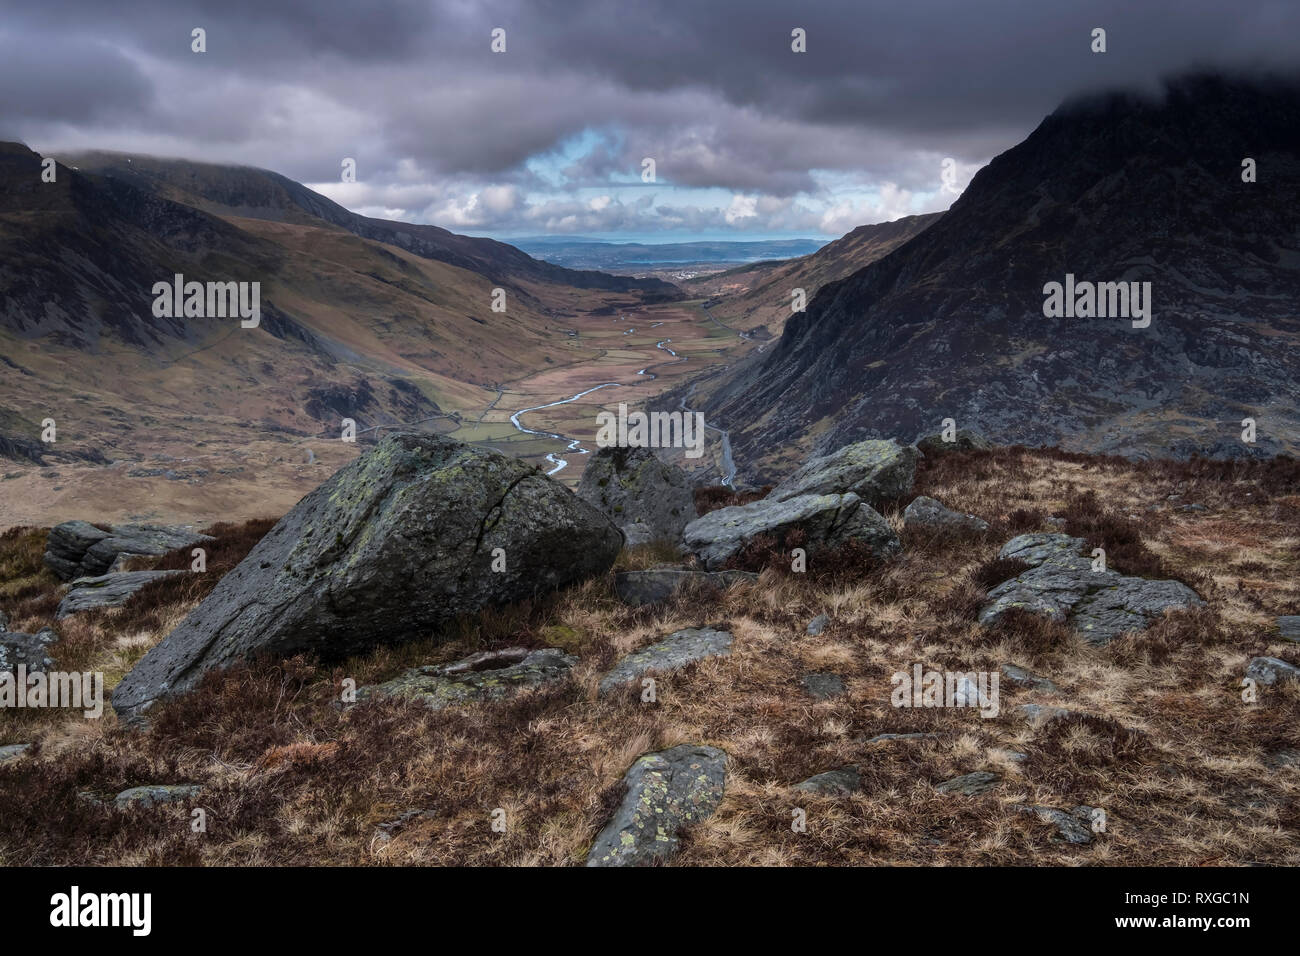 The Nant Ffrancon Valley from Y Gribin, Snowdonia National Park, North Wales, UK - Stock Image